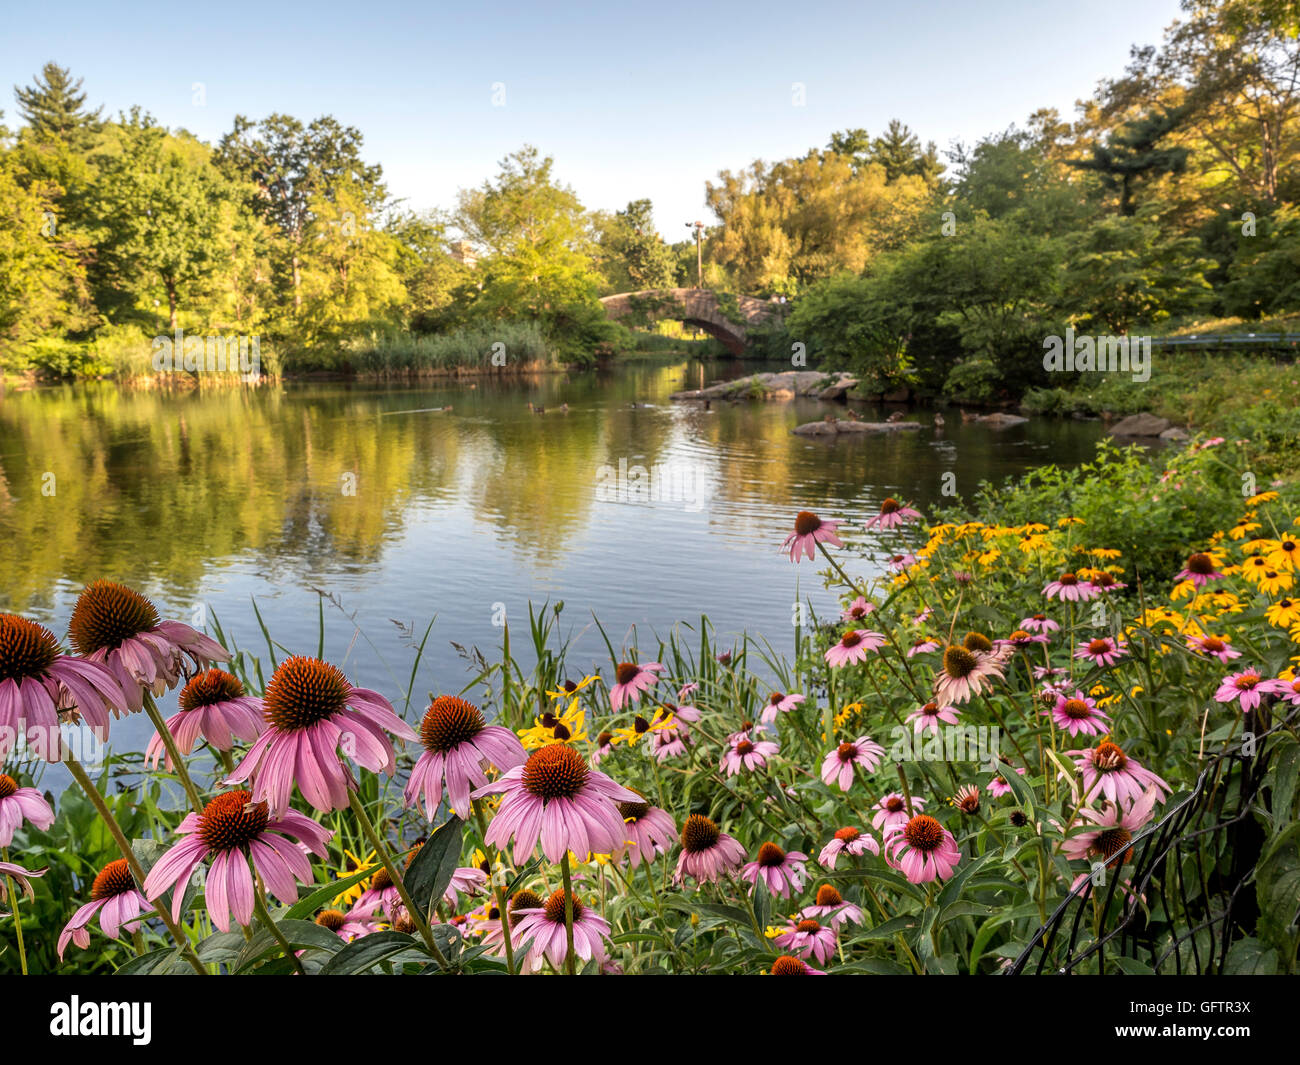 Gapstow bridge in Central Park on pond with flowers in summer in early morning Stock Photo